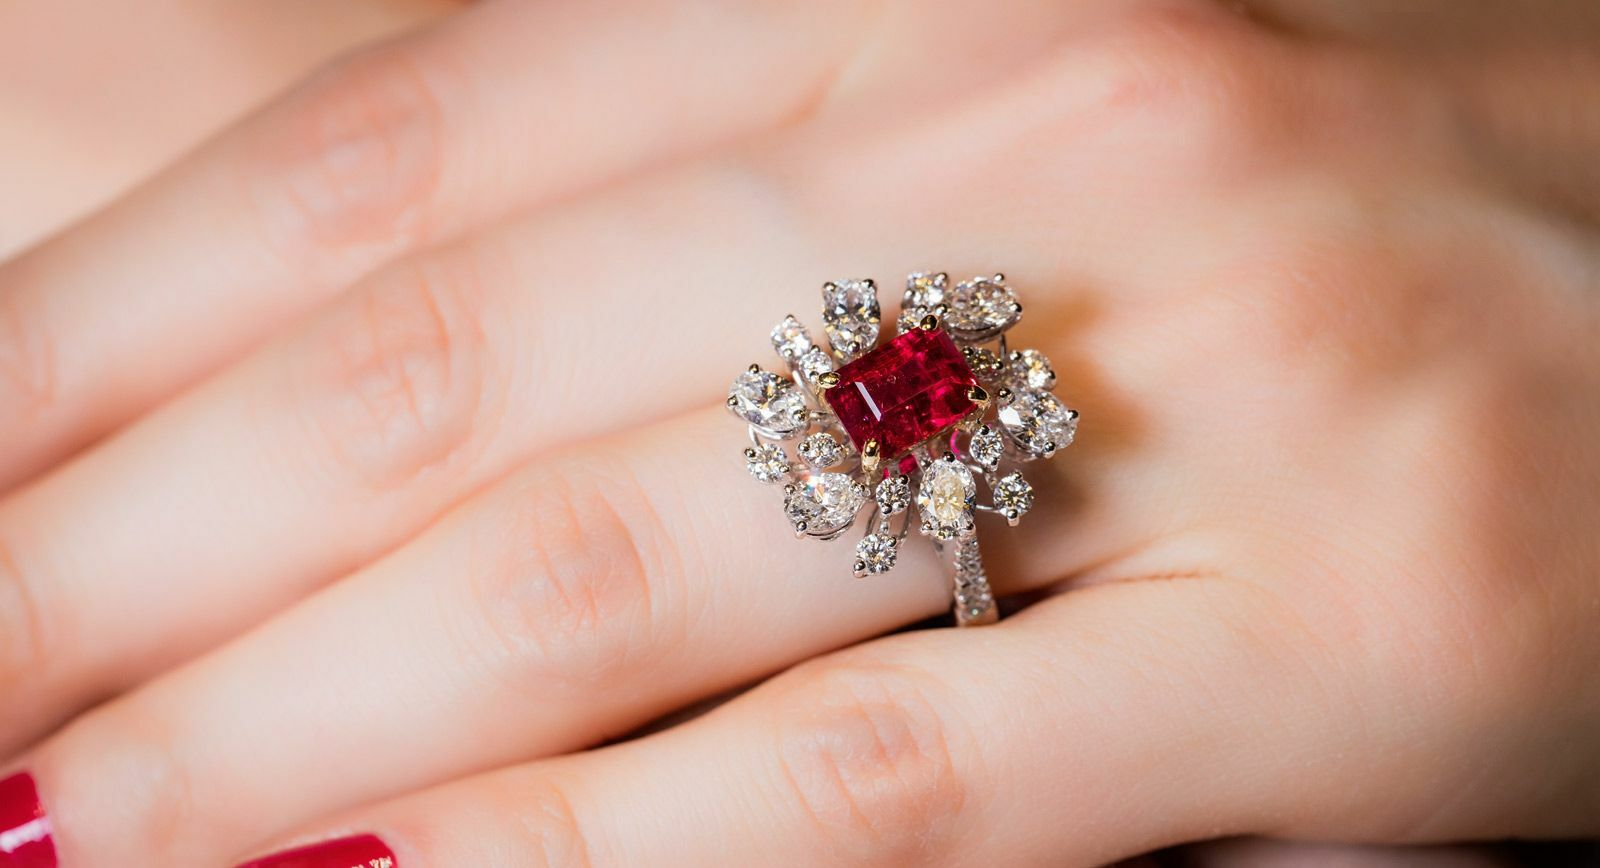 Caratell bixbite ring with red beryl and diamonds